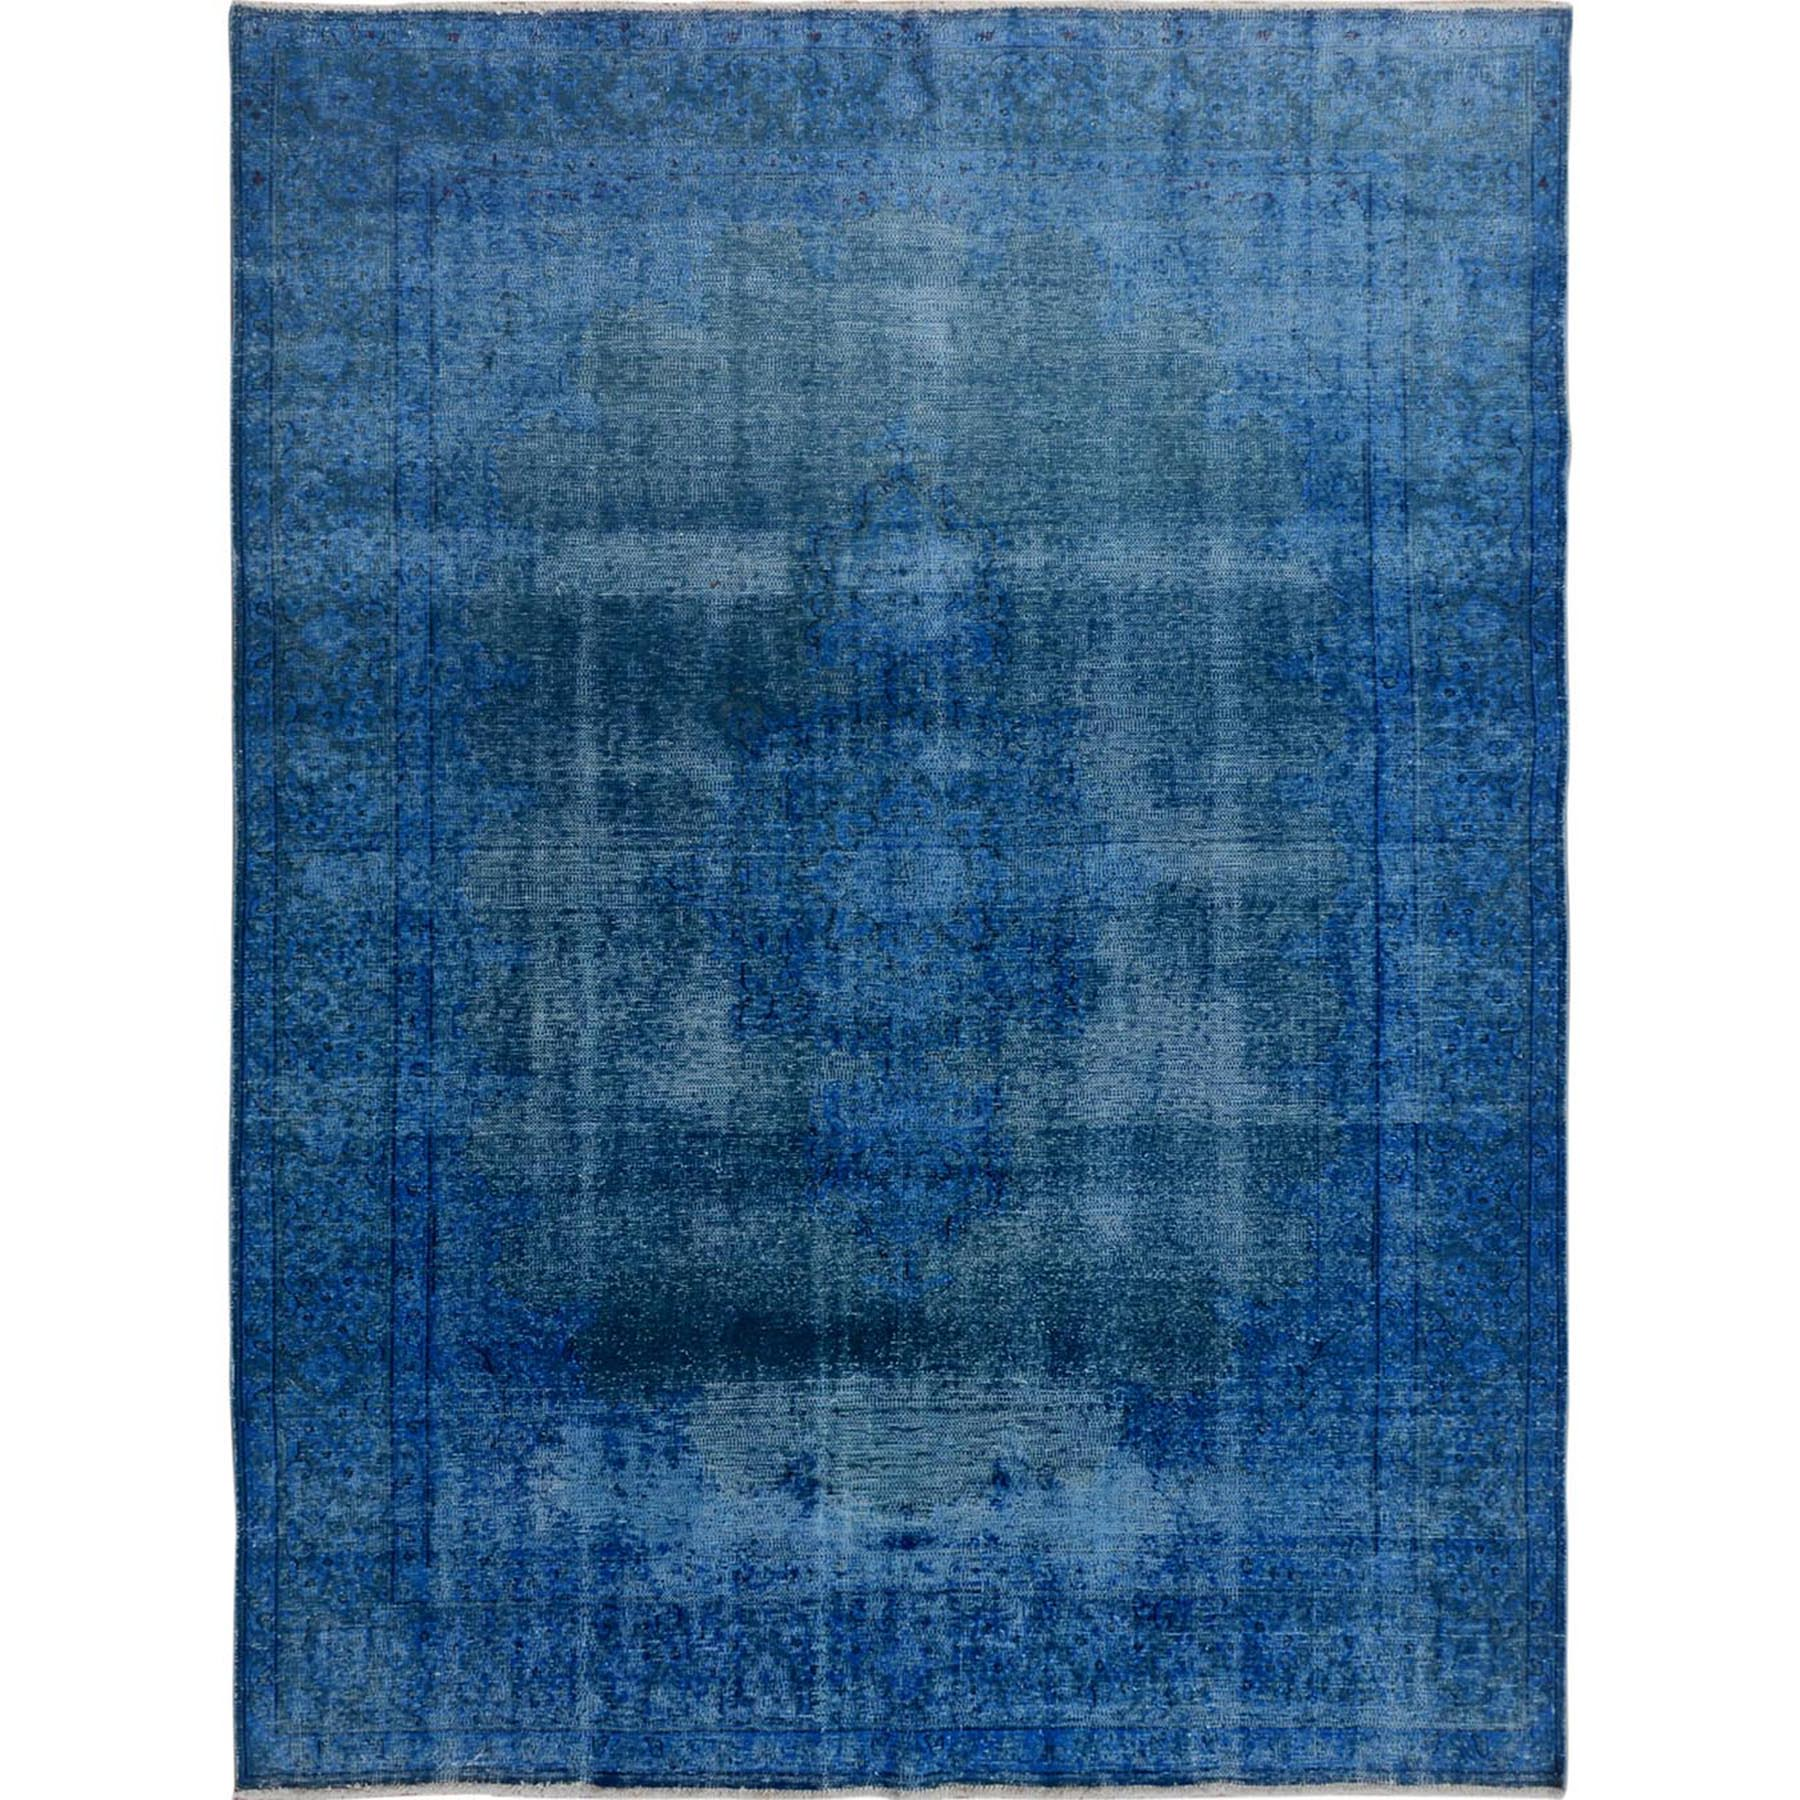 Fetneh Collection And Vintage Overdyed Collection Hand Knotted Blue Rug No: 01114814